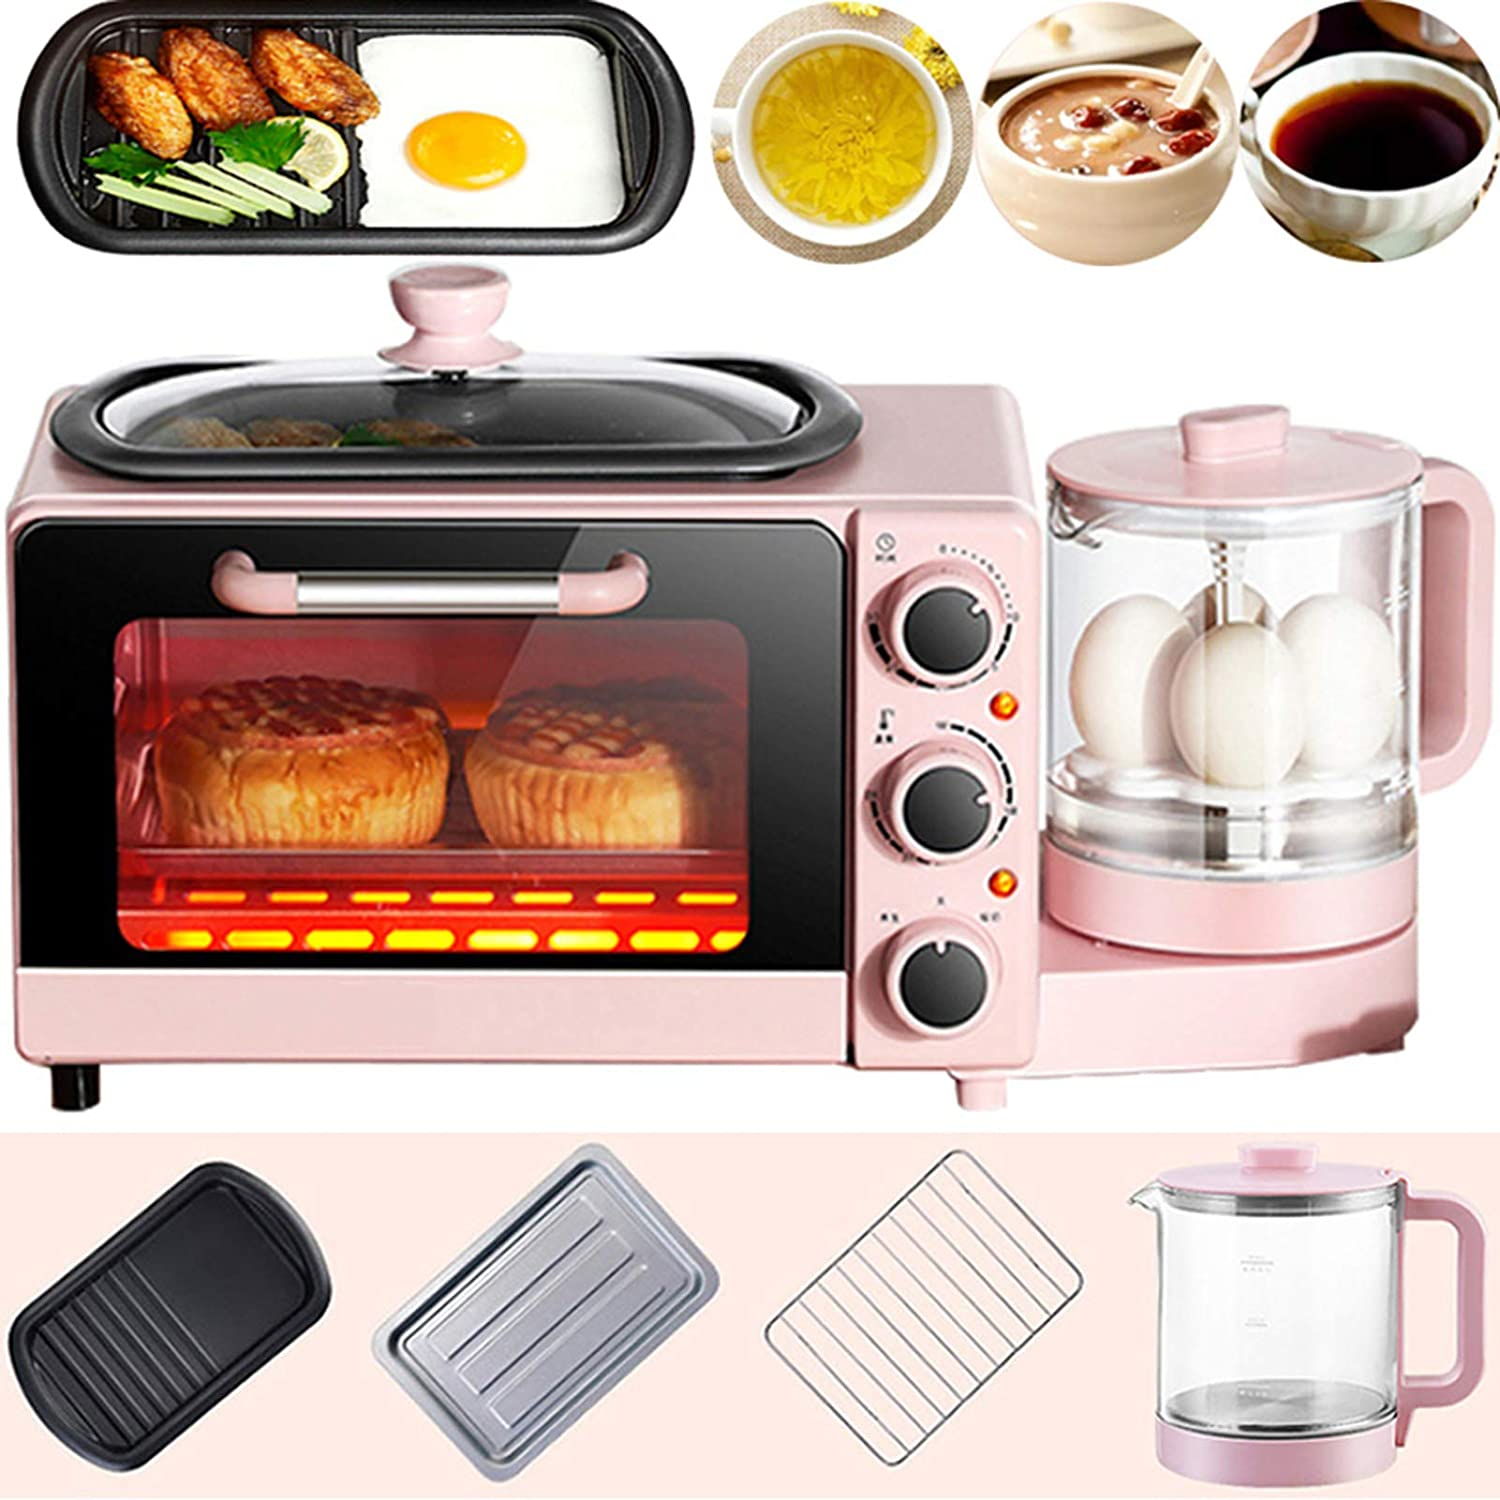 4 in 1 Home Small Breakfast Machine, Multifunction Vintage Countertop Toaster Oven, Electric Smart Microwave Oven with Frying Pan, Health Pot, Sandwich, Toast,Pink